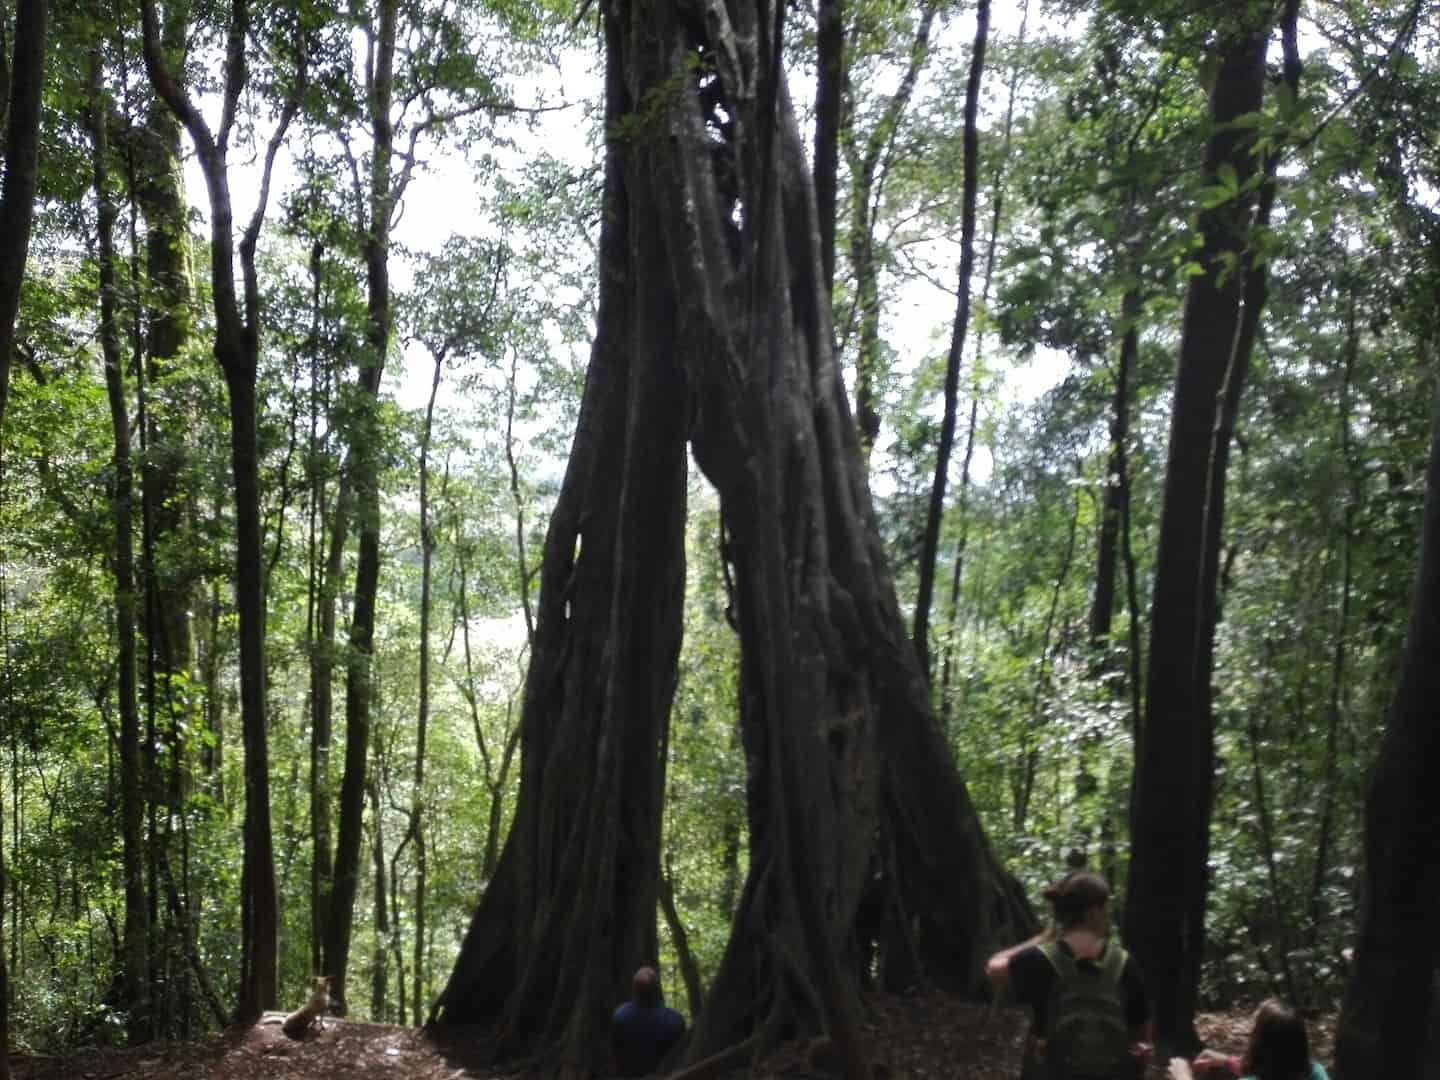 Strangler fig in Monteverde, Costa Rica